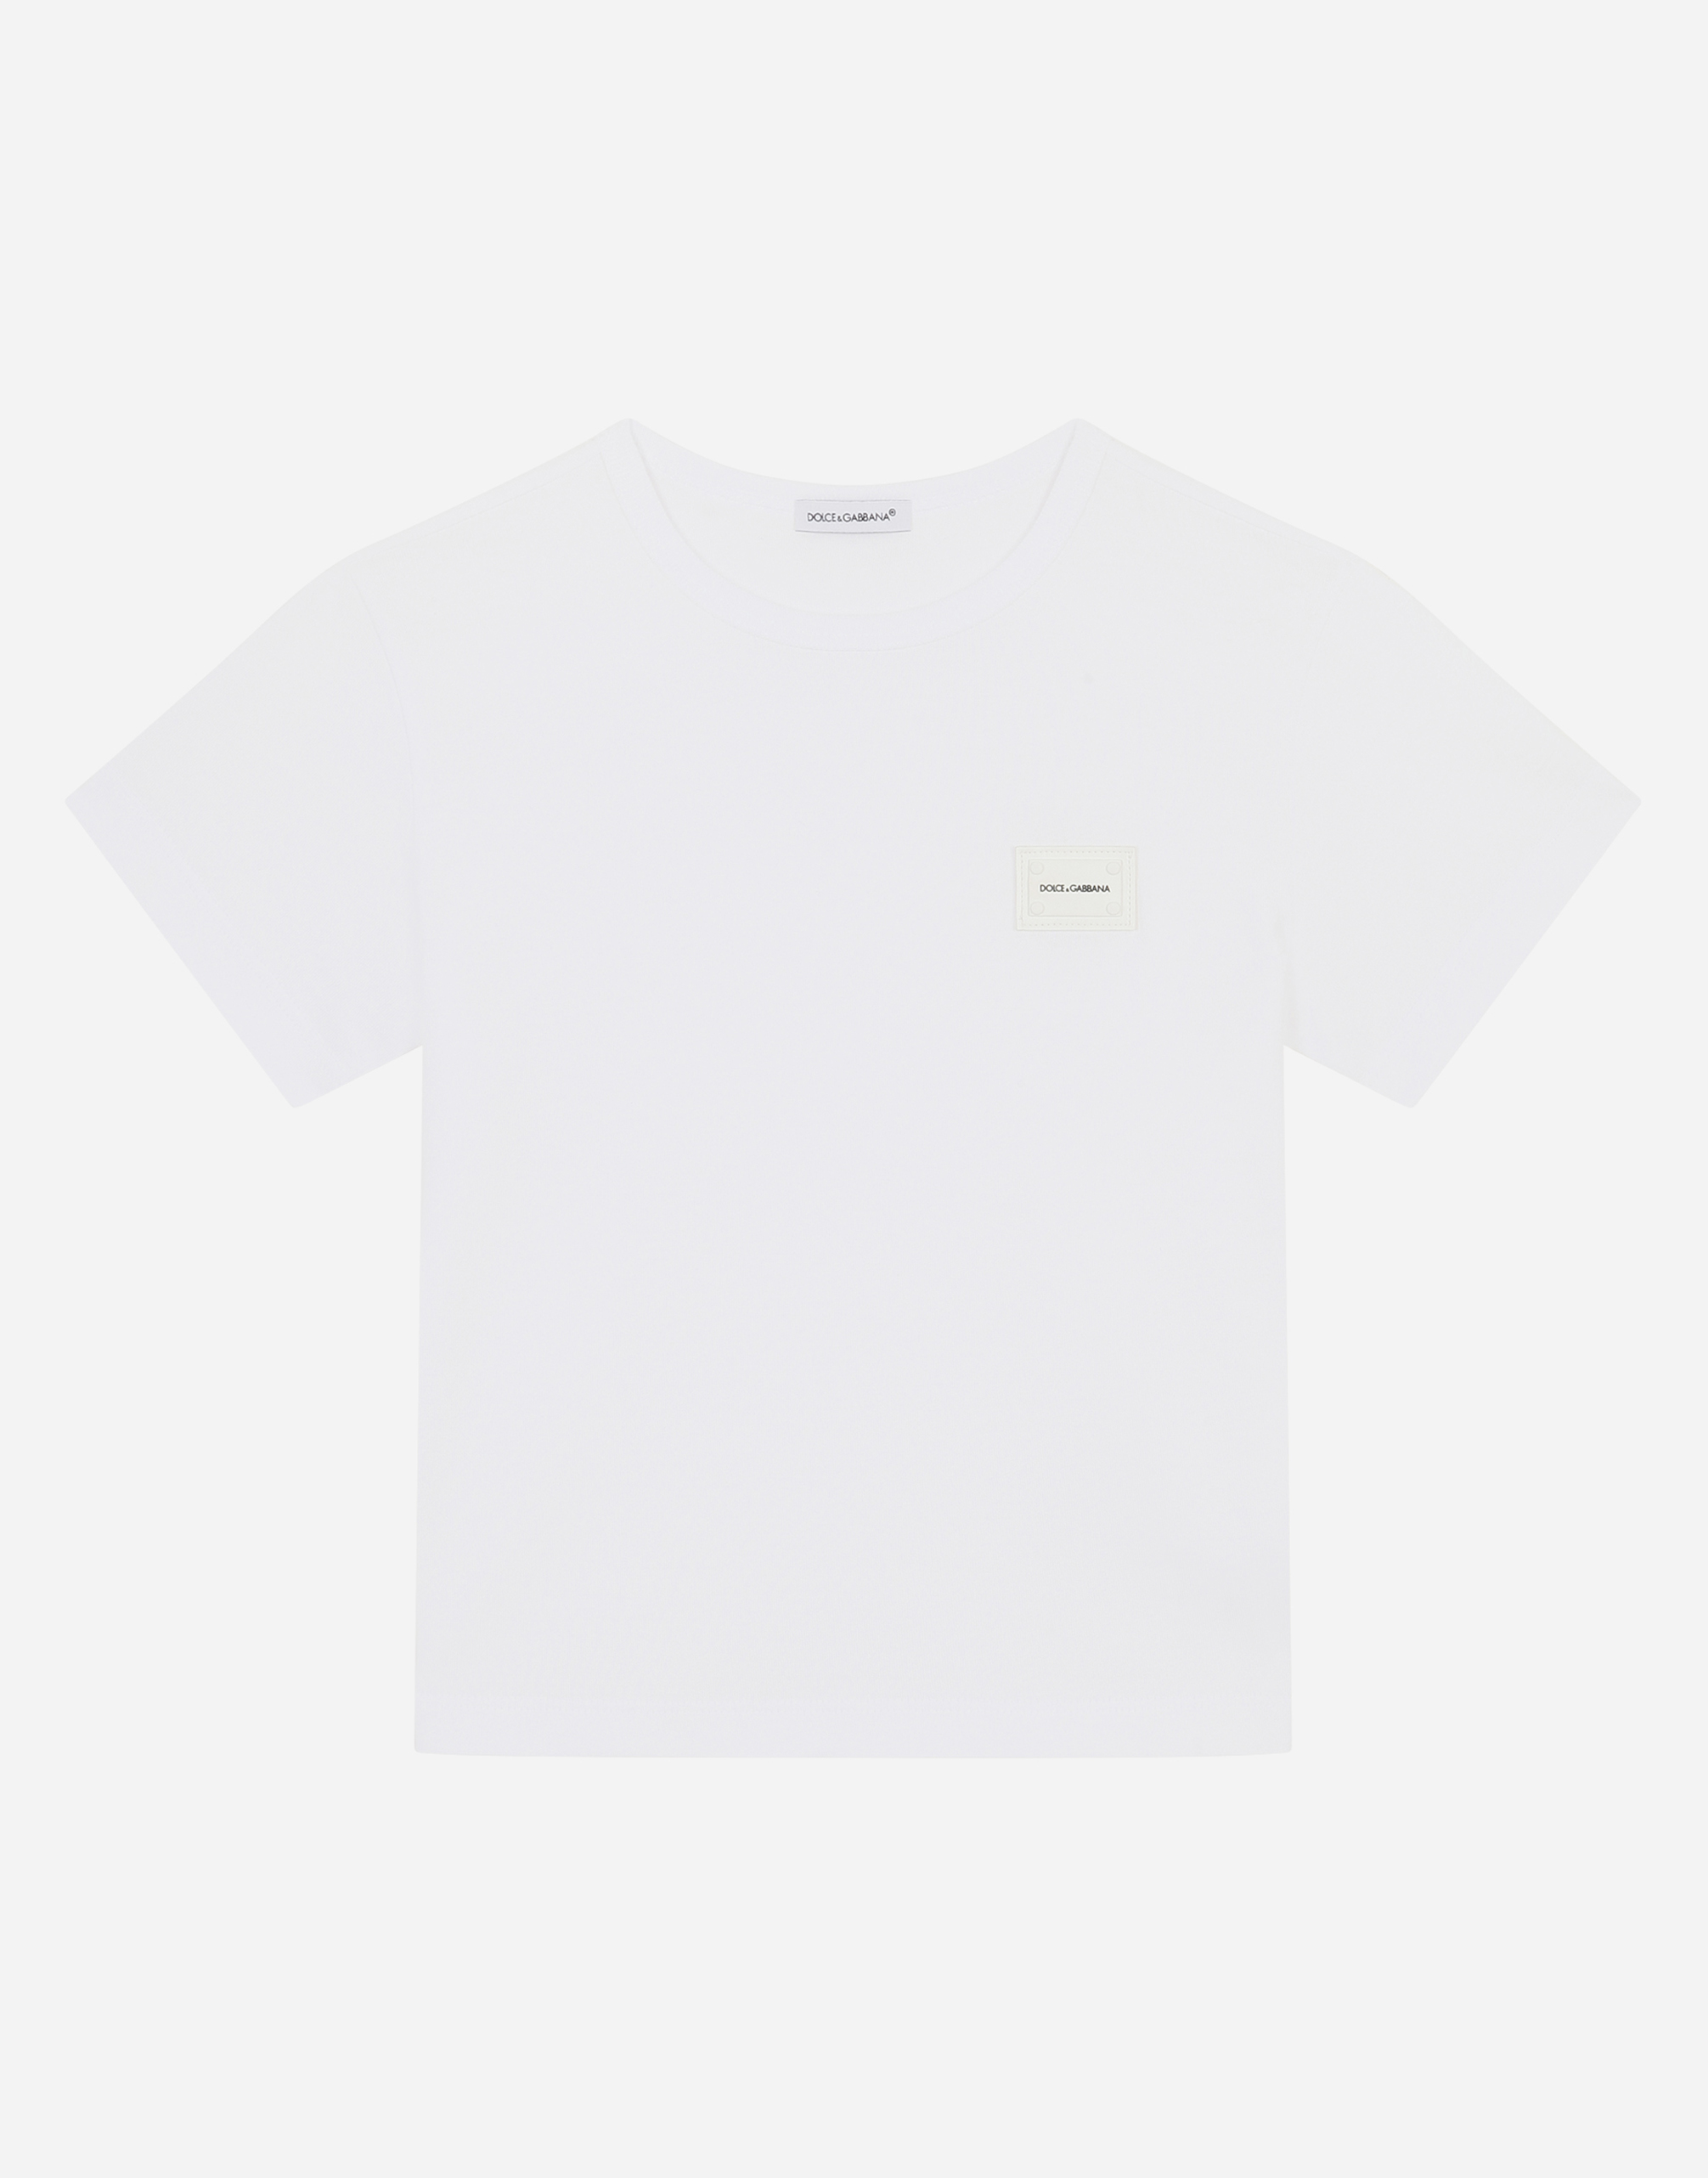 Dolce & Gabbana COTTON T-SHIRT WITH PLATE